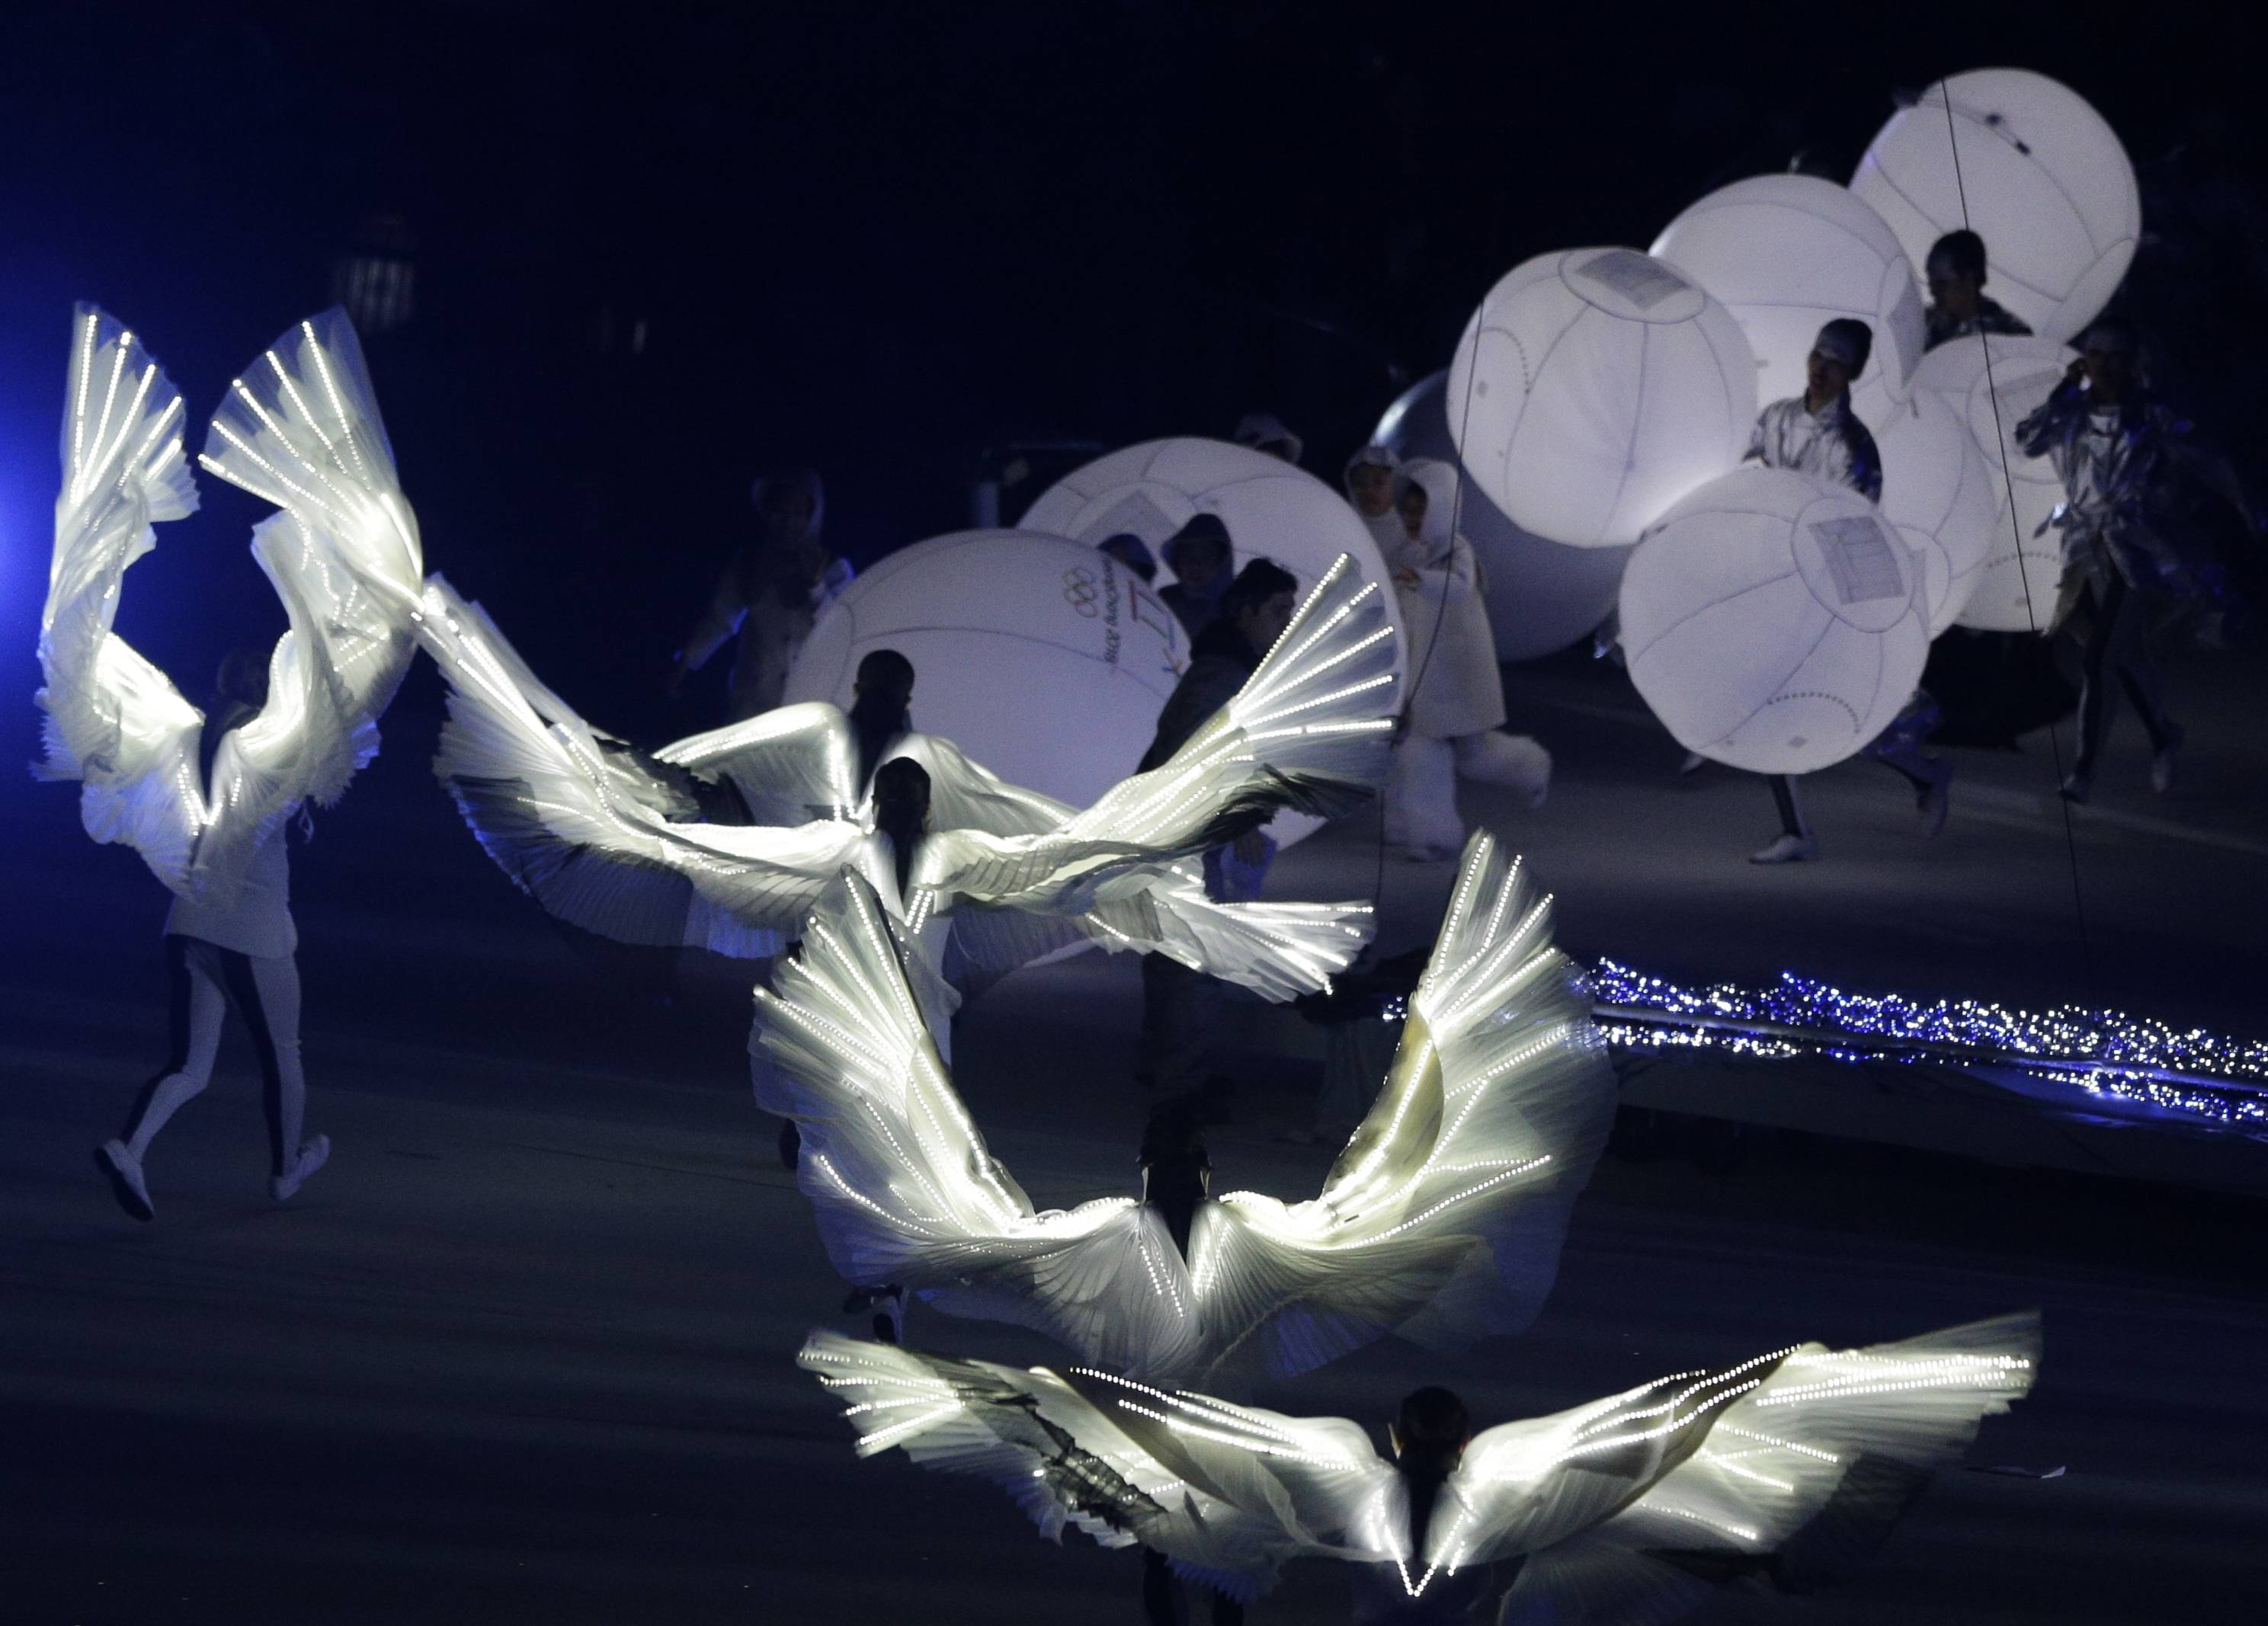 South Korean artists perform during the closing ceremony of the 2014 Winter Olympics, Sunday, Feb. 23, 2014, in Sochi, Russia.